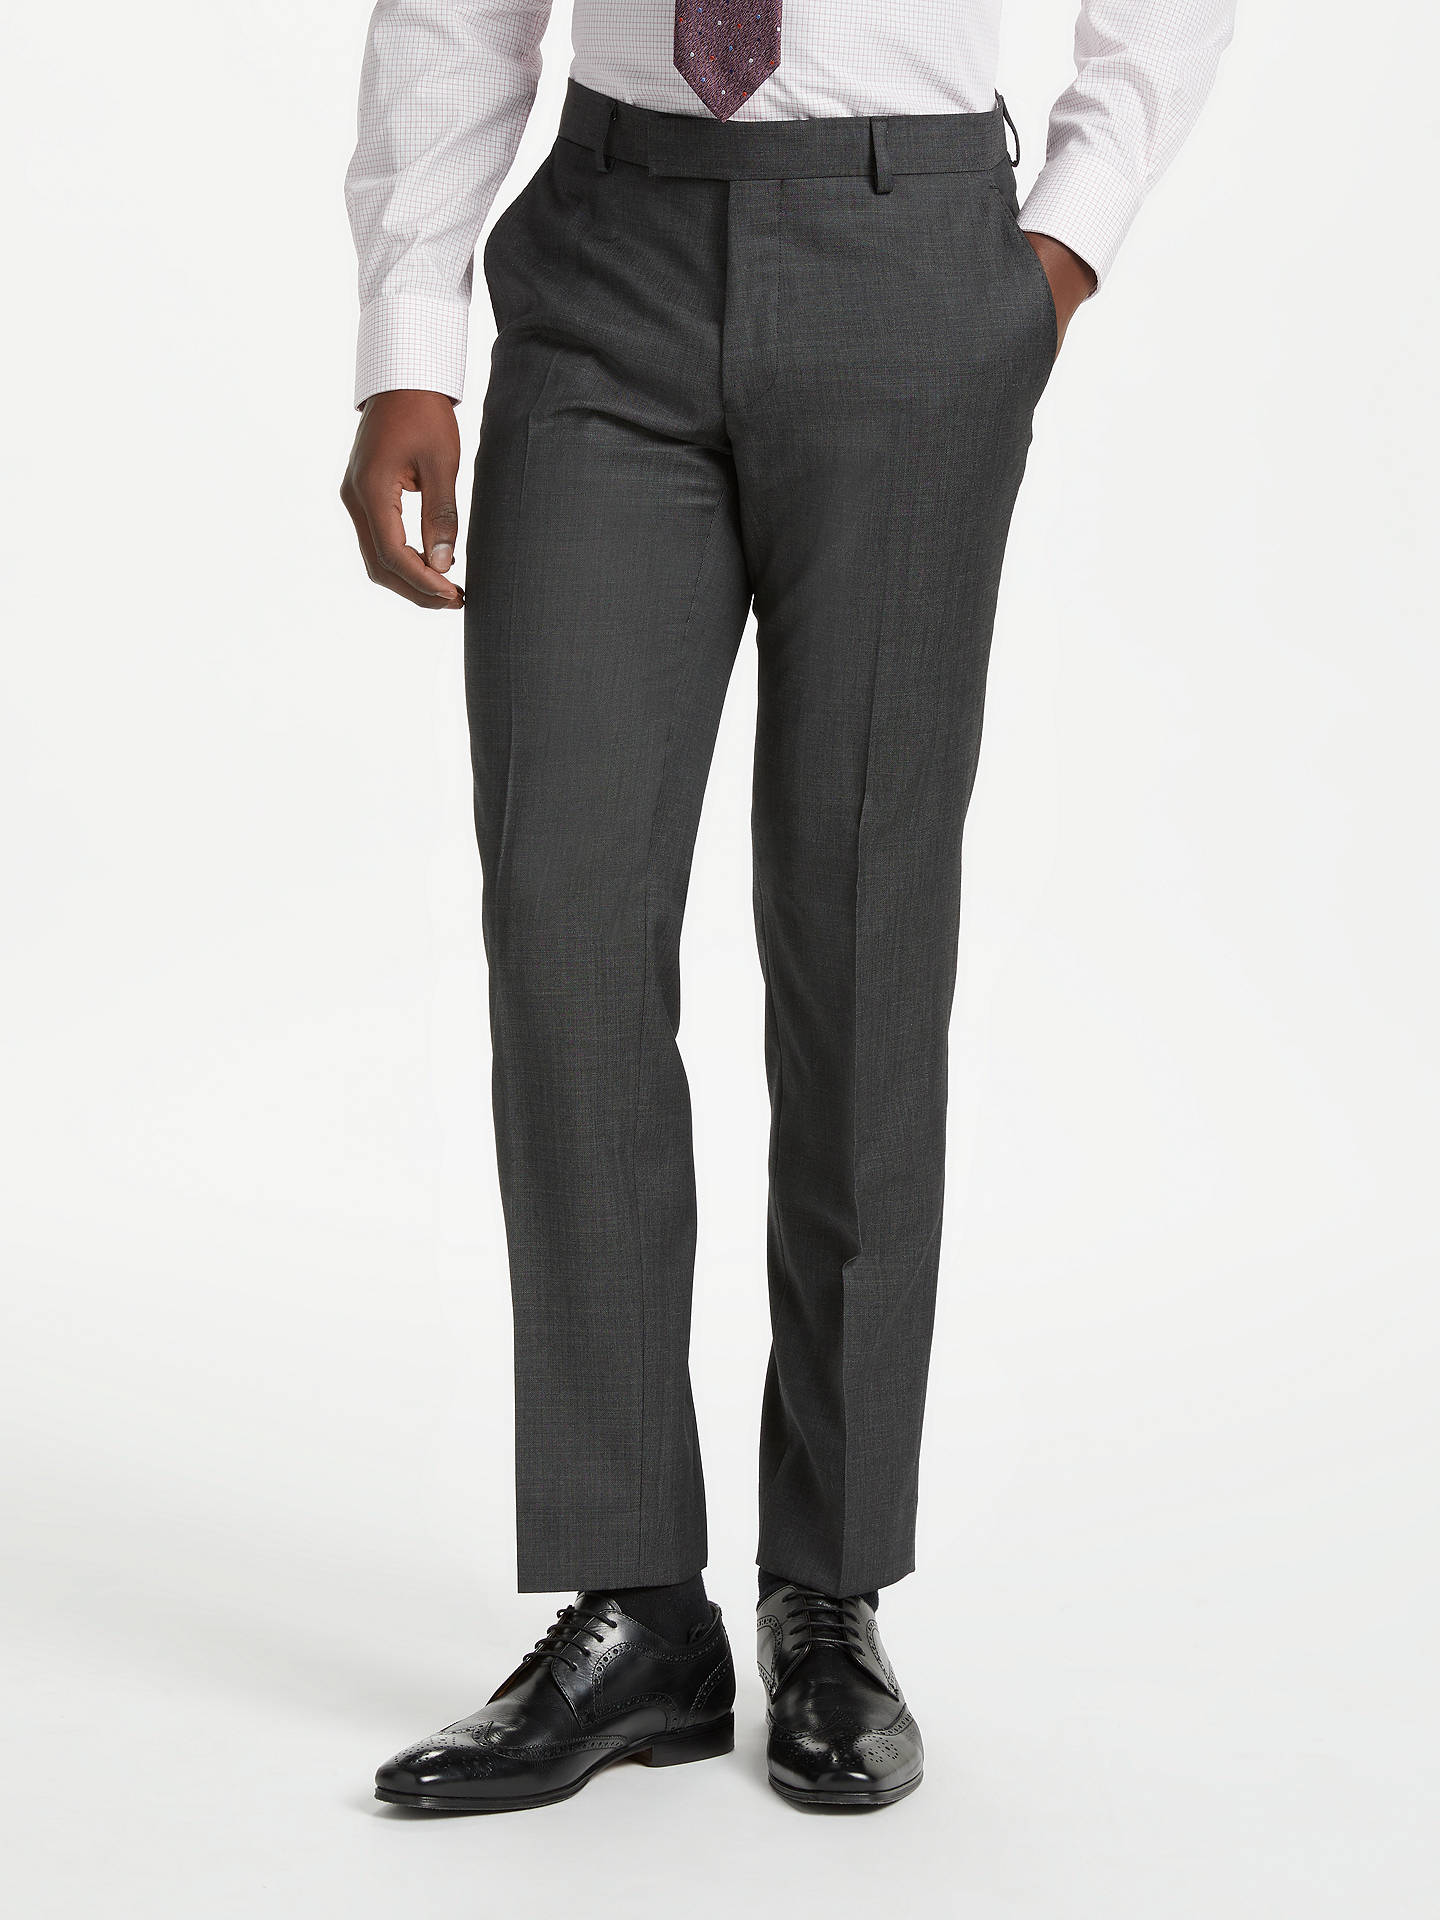 BuyRichard James Mayfair Wool Pindot Slim Fit Suit Trousers, Charcoal, 32S Online at johnlewis.com